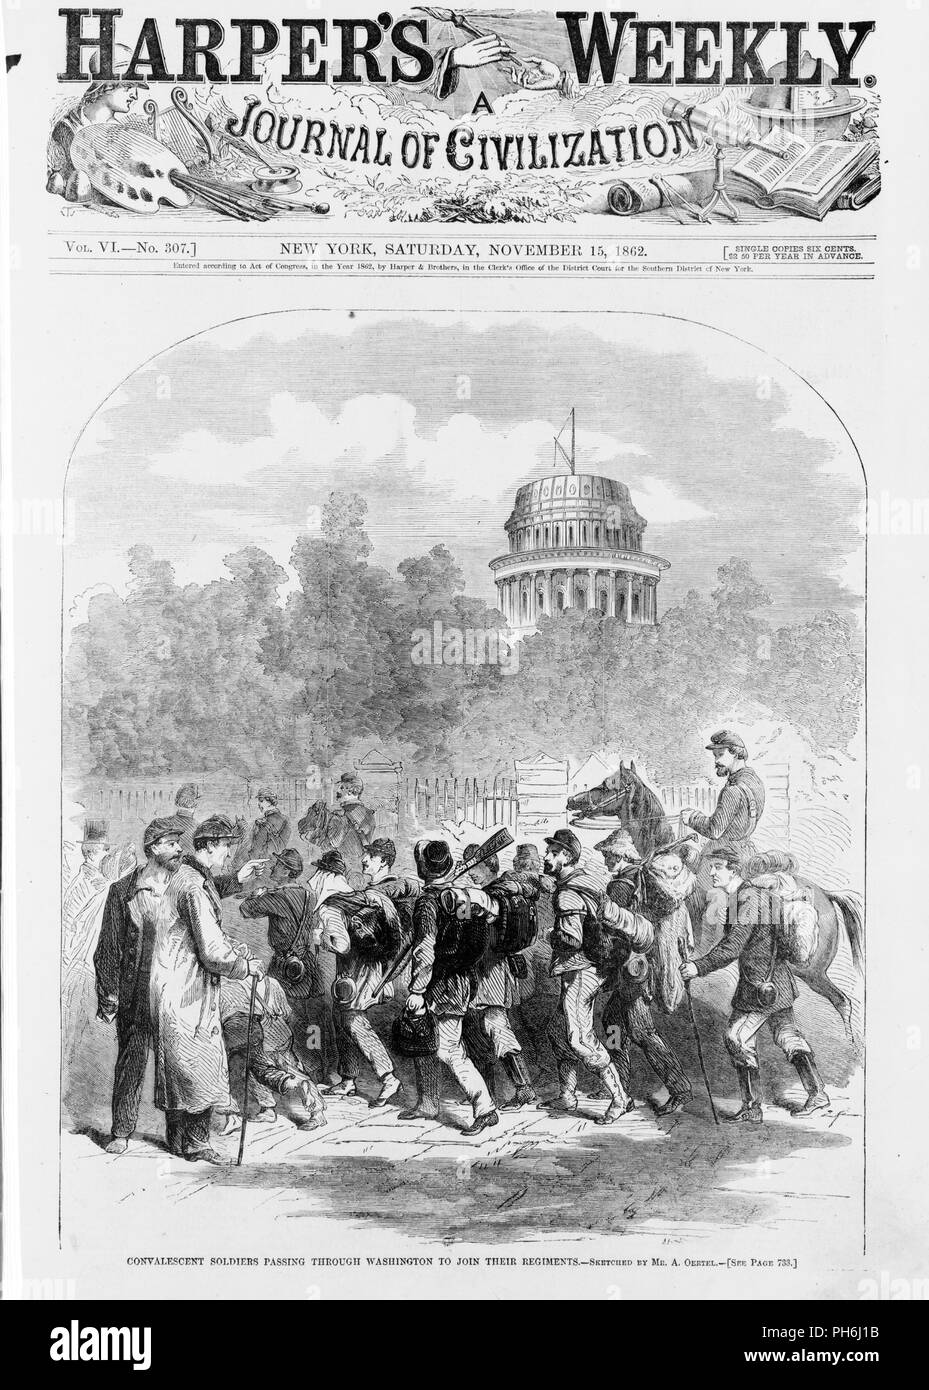 From Harper's Weekly, November 15, 1862. The 2nd Battle of Manassas occurred in 1862, from which the Union retreated to Washington, D.C. and the Capitol became a hospital for causalities. - Stock Image